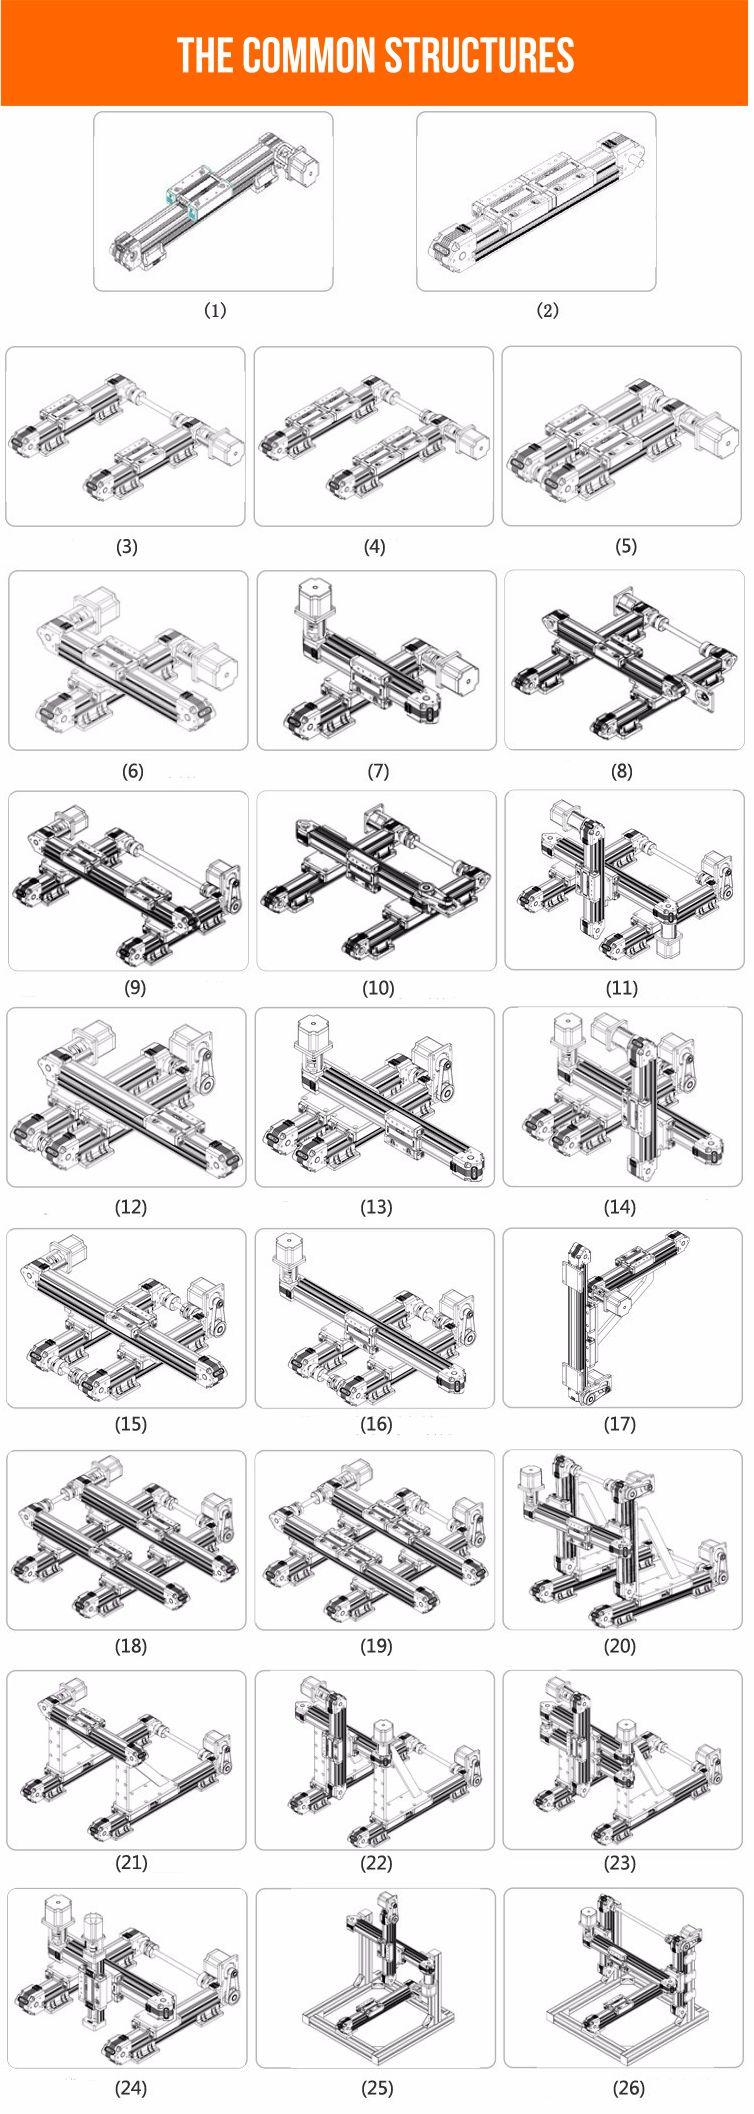 linear guide systems, common structures,